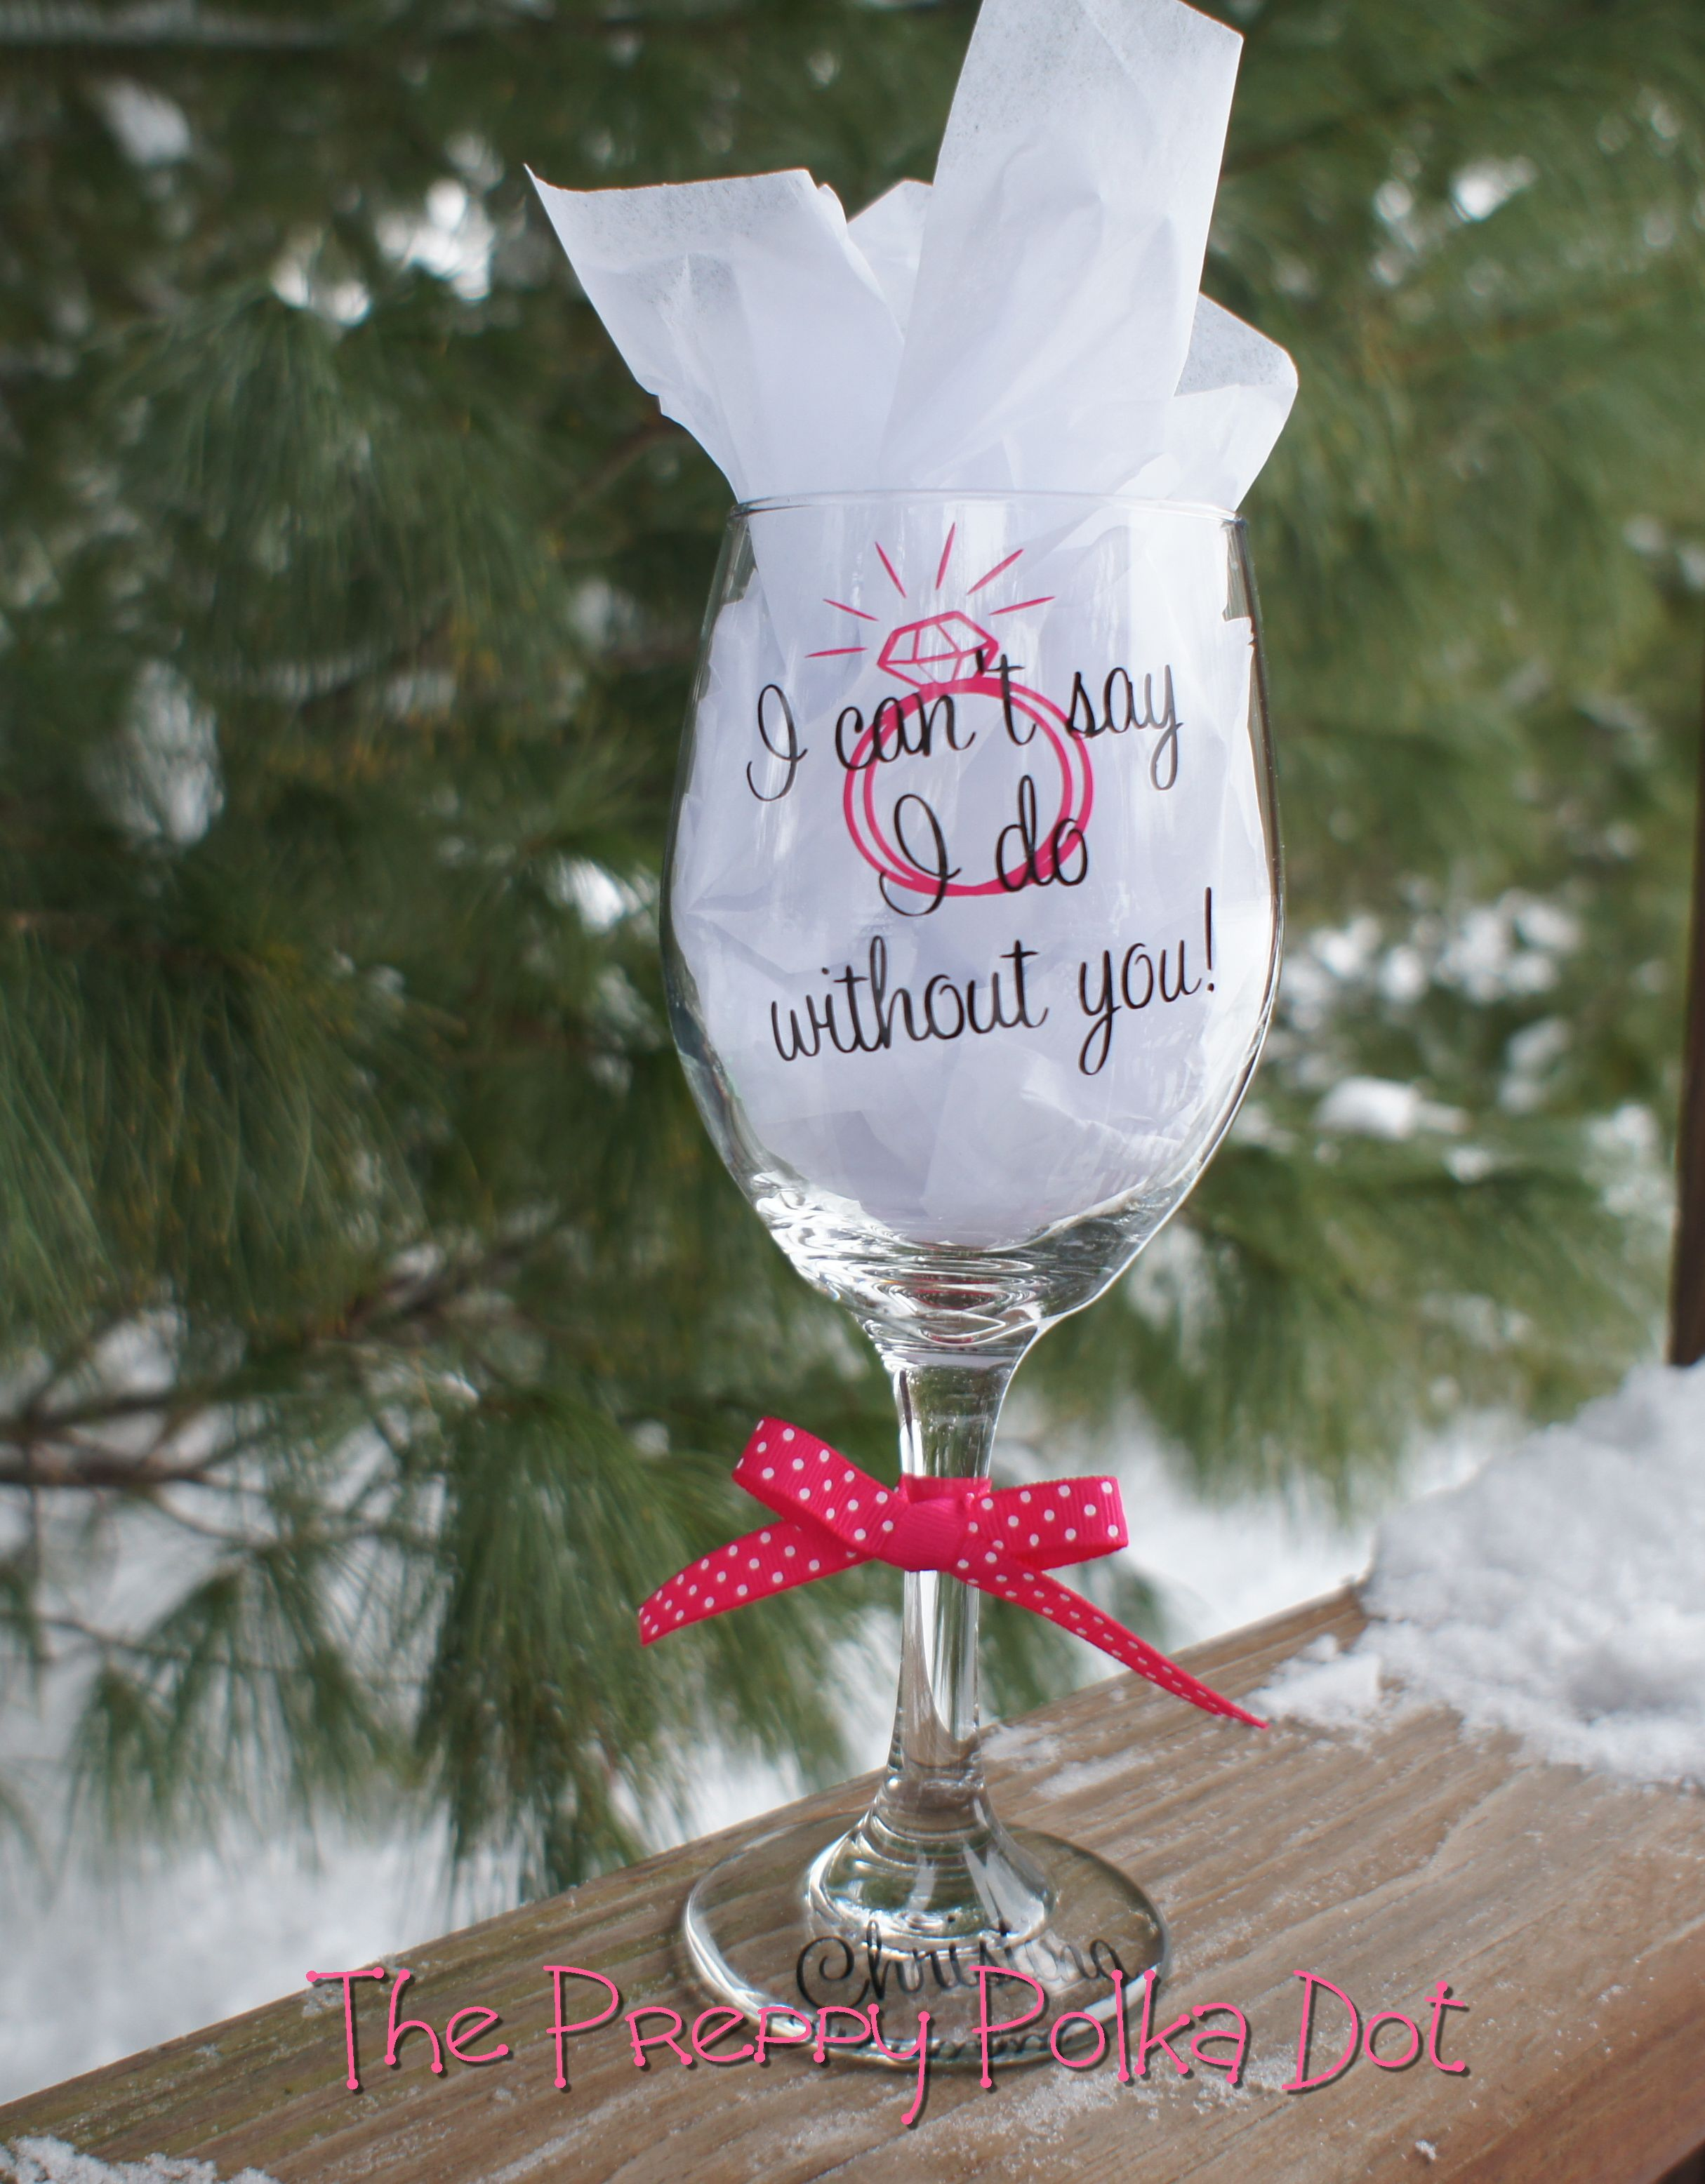 I can't say I DO without you - Wine Glass